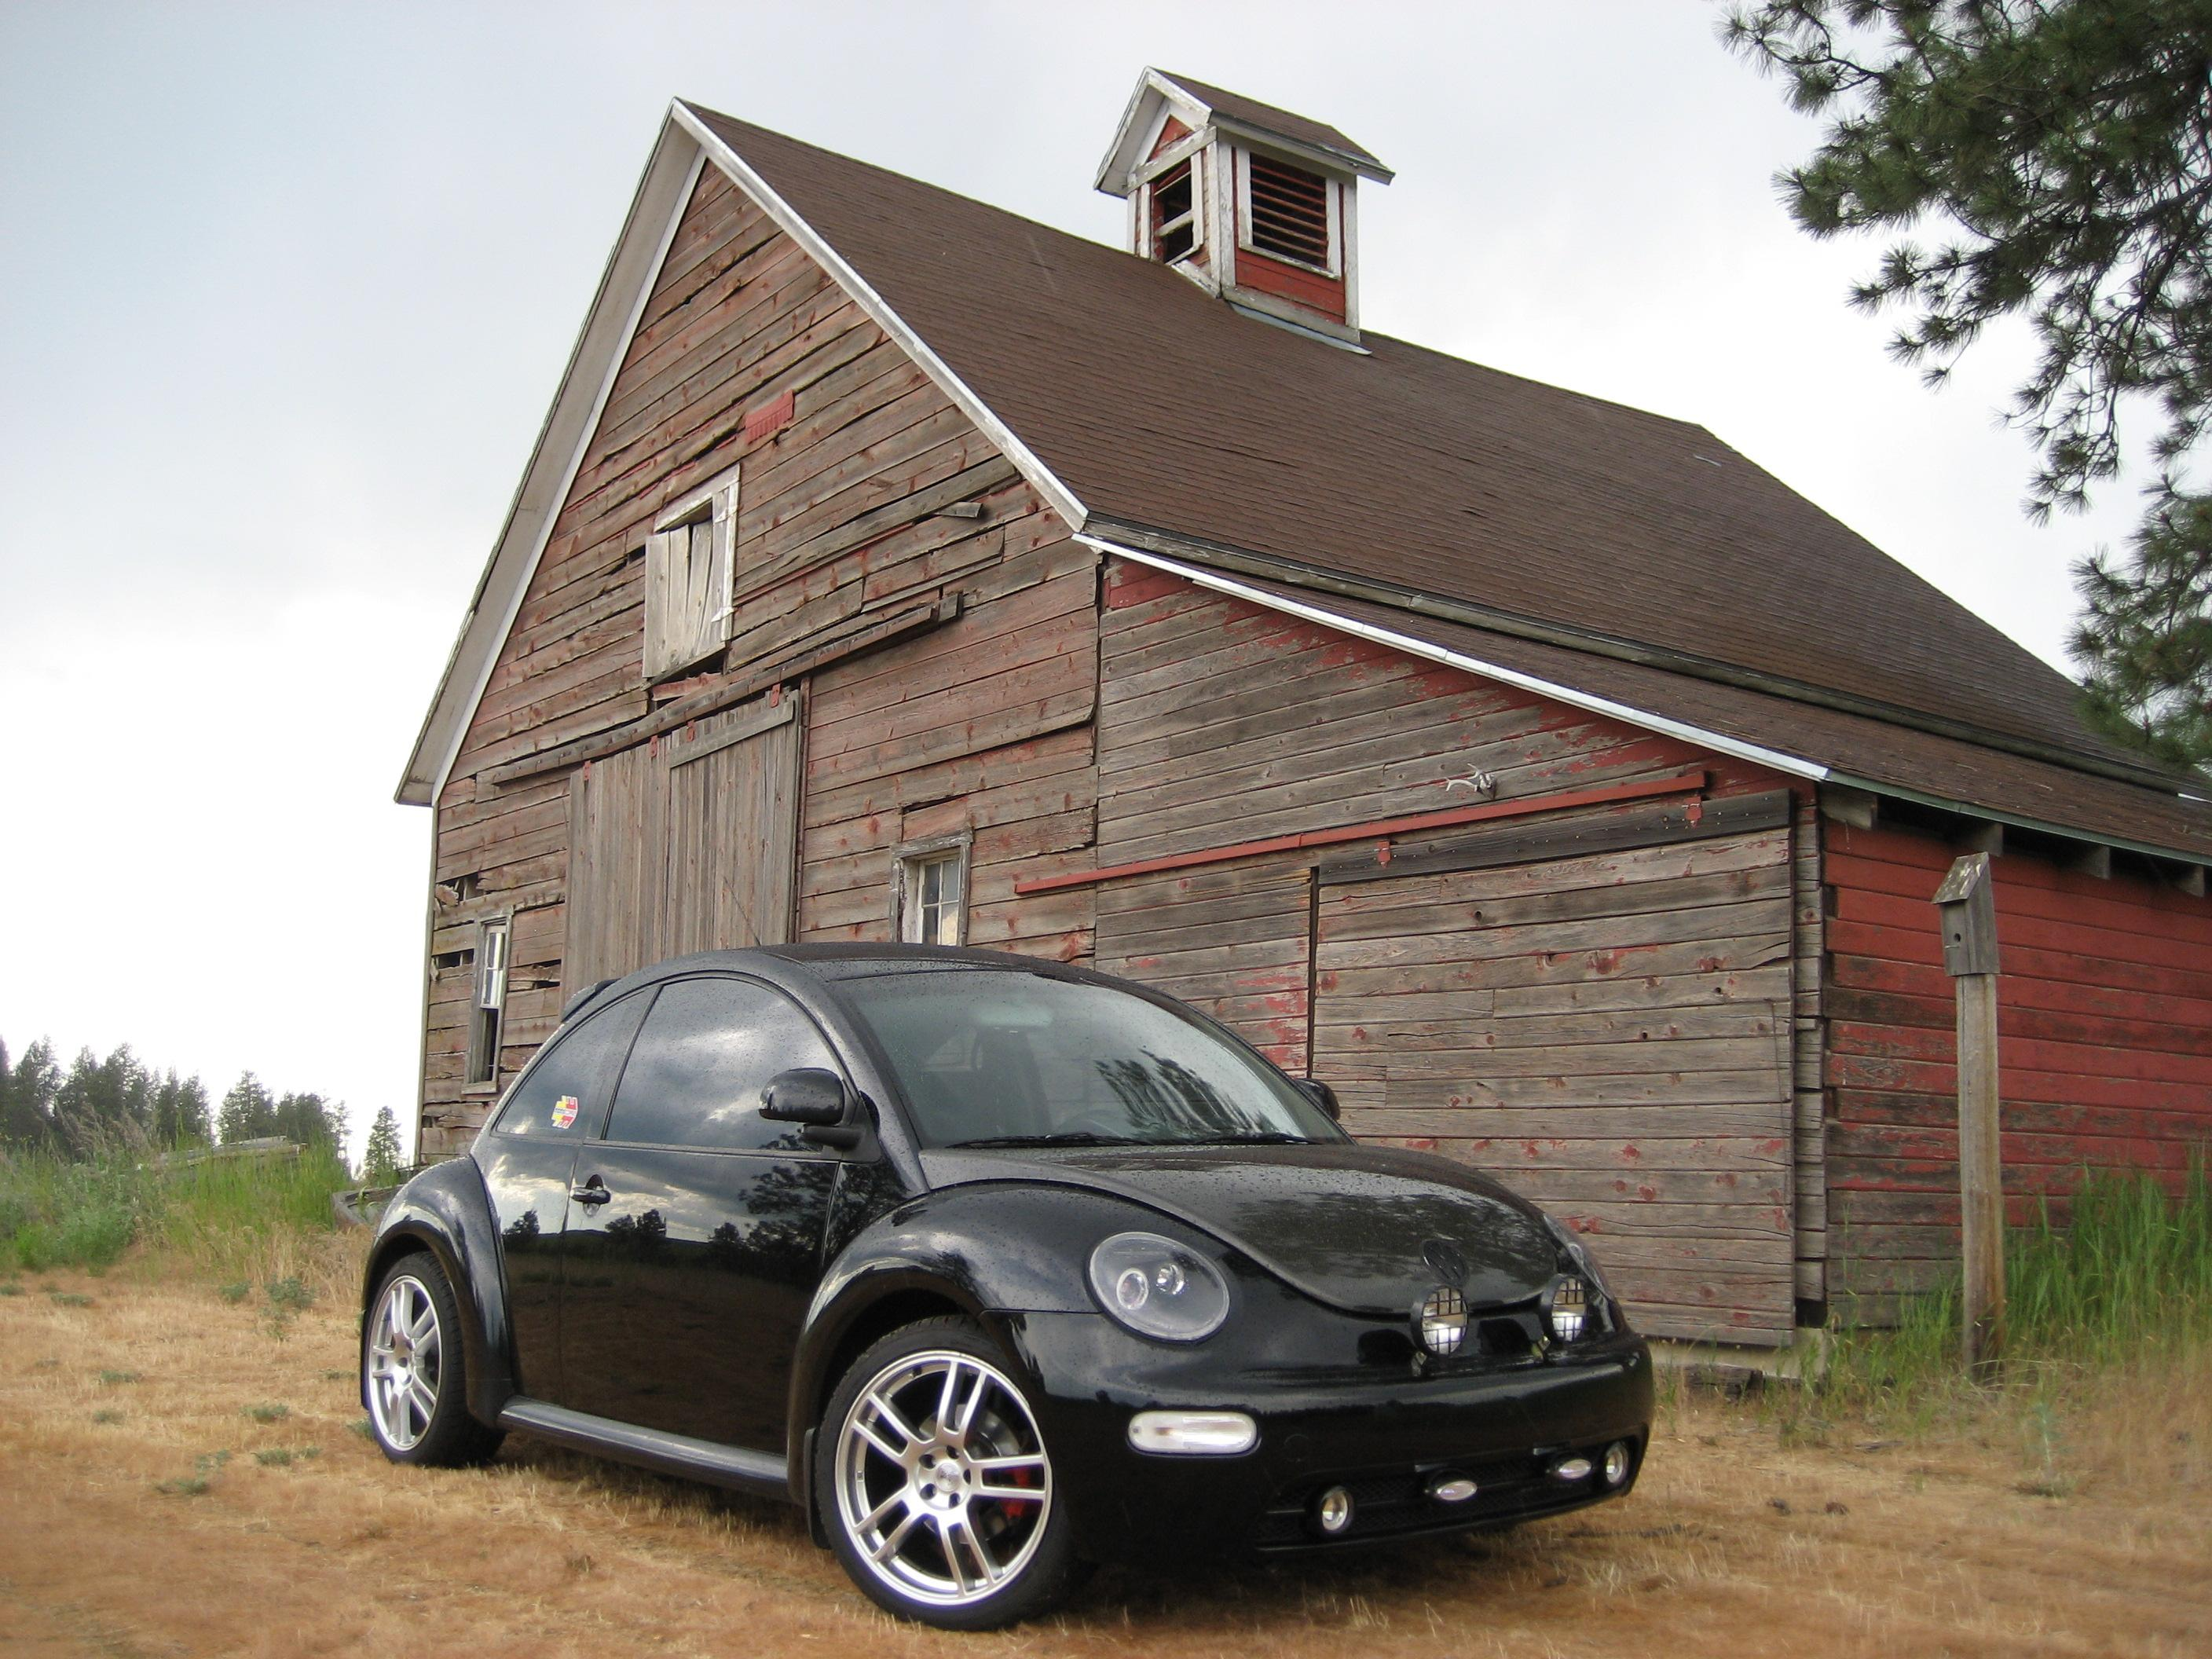 vdubdog 39 s 1998 volkswagen beetle in spokane wa. Black Bedroom Furniture Sets. Home Design Ideas